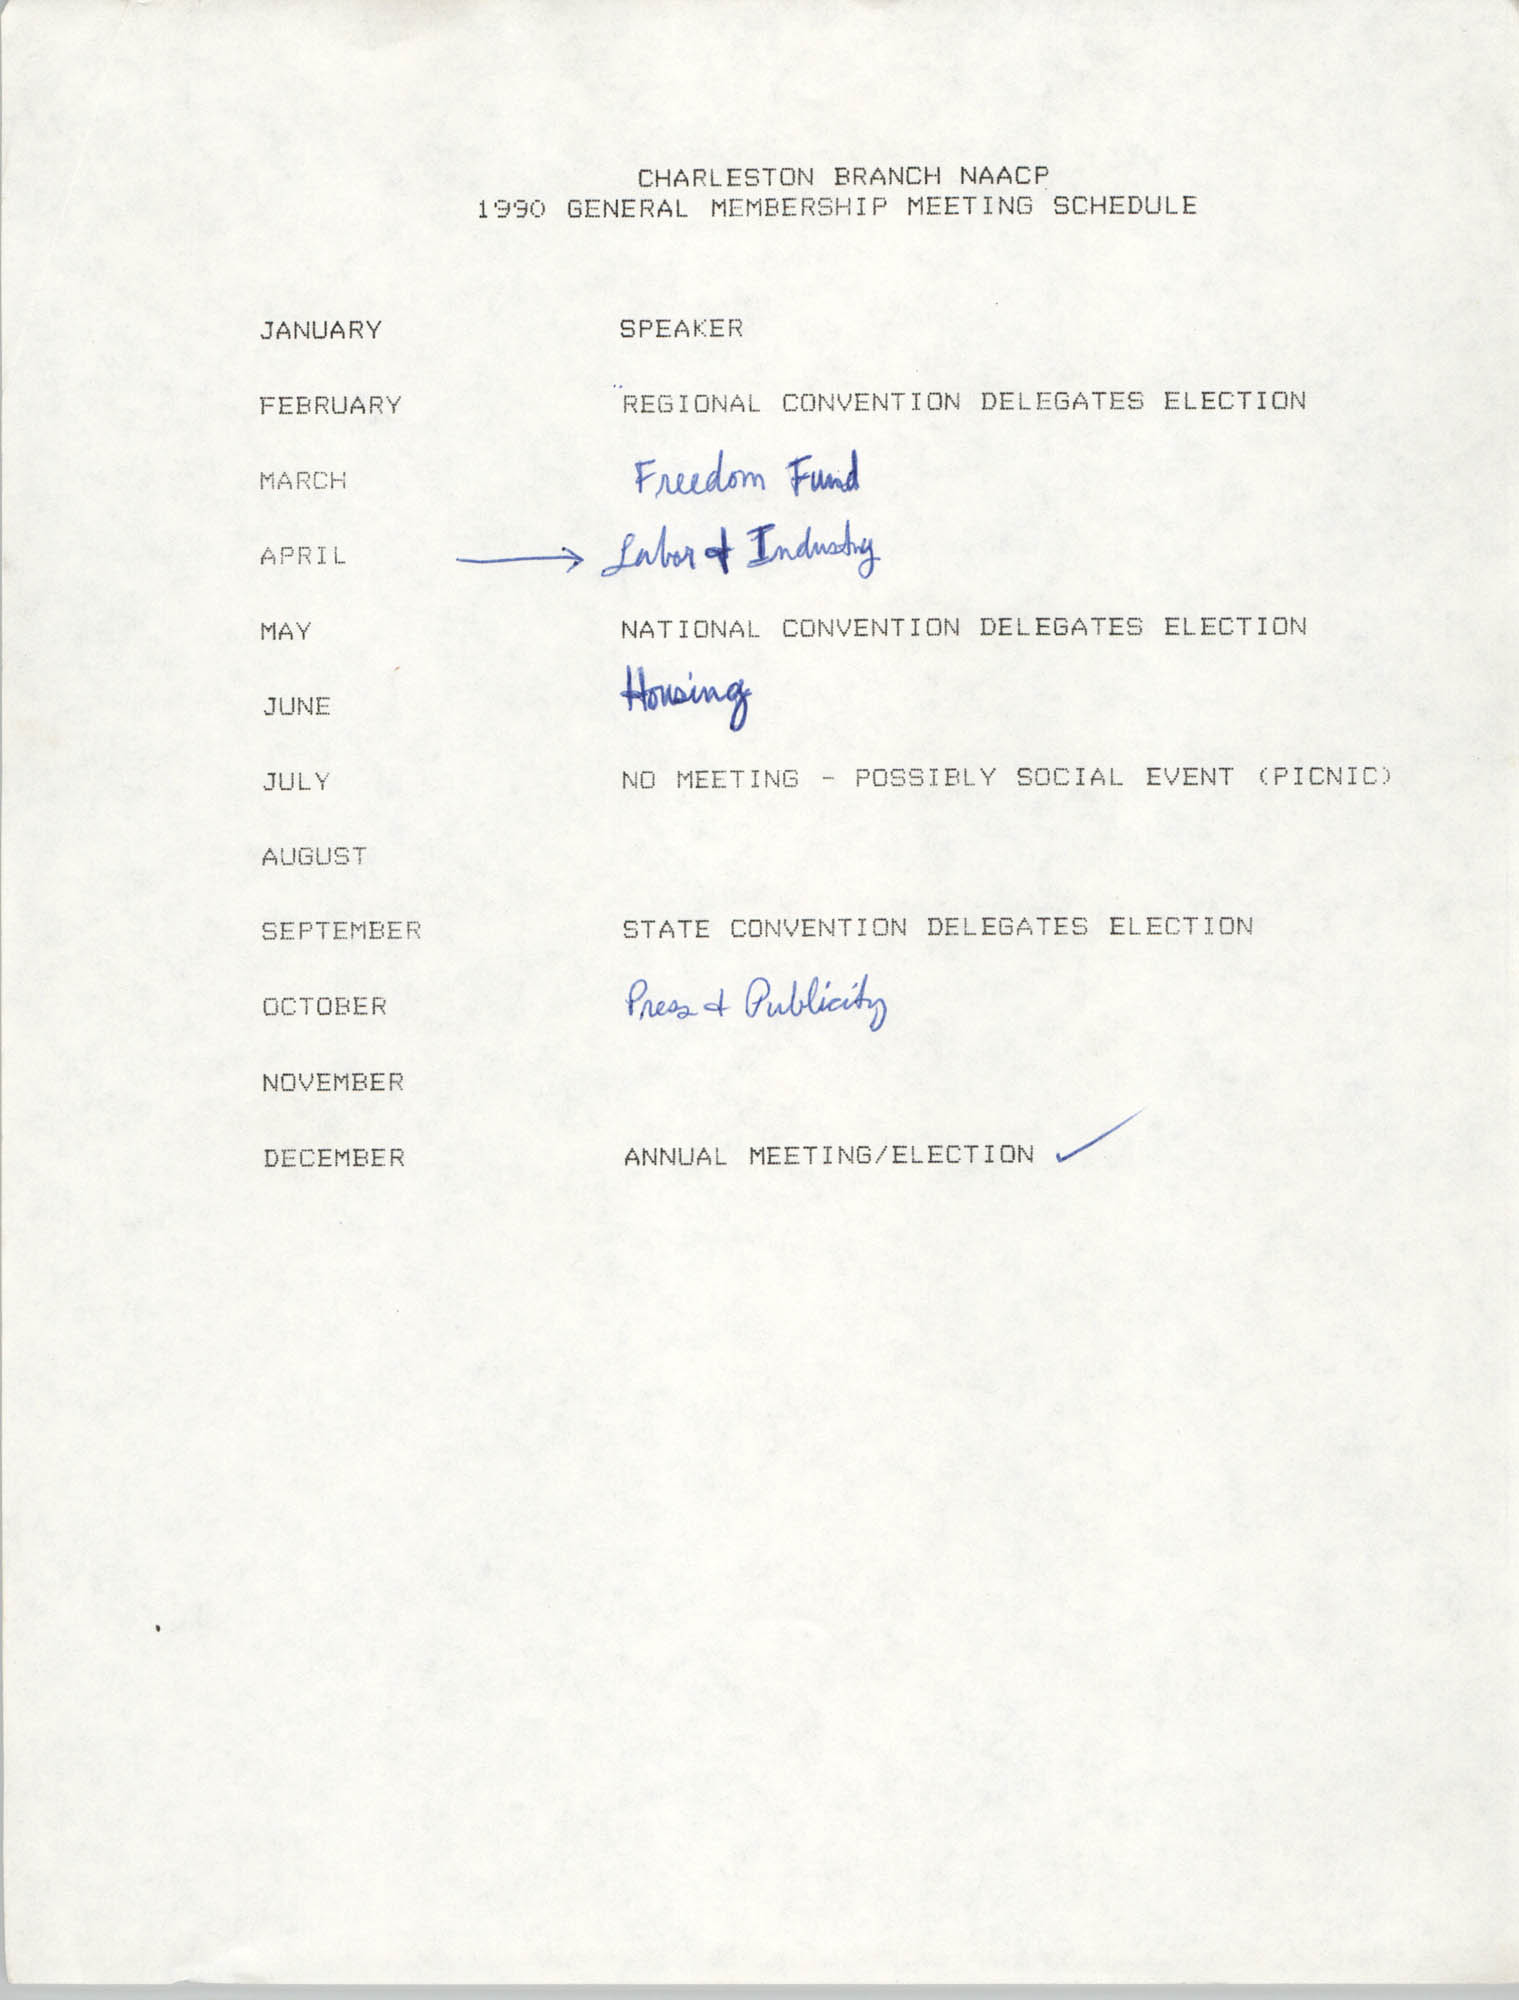 1990 General Membership Meeting Schedule, Charleston Branch of the NAACP